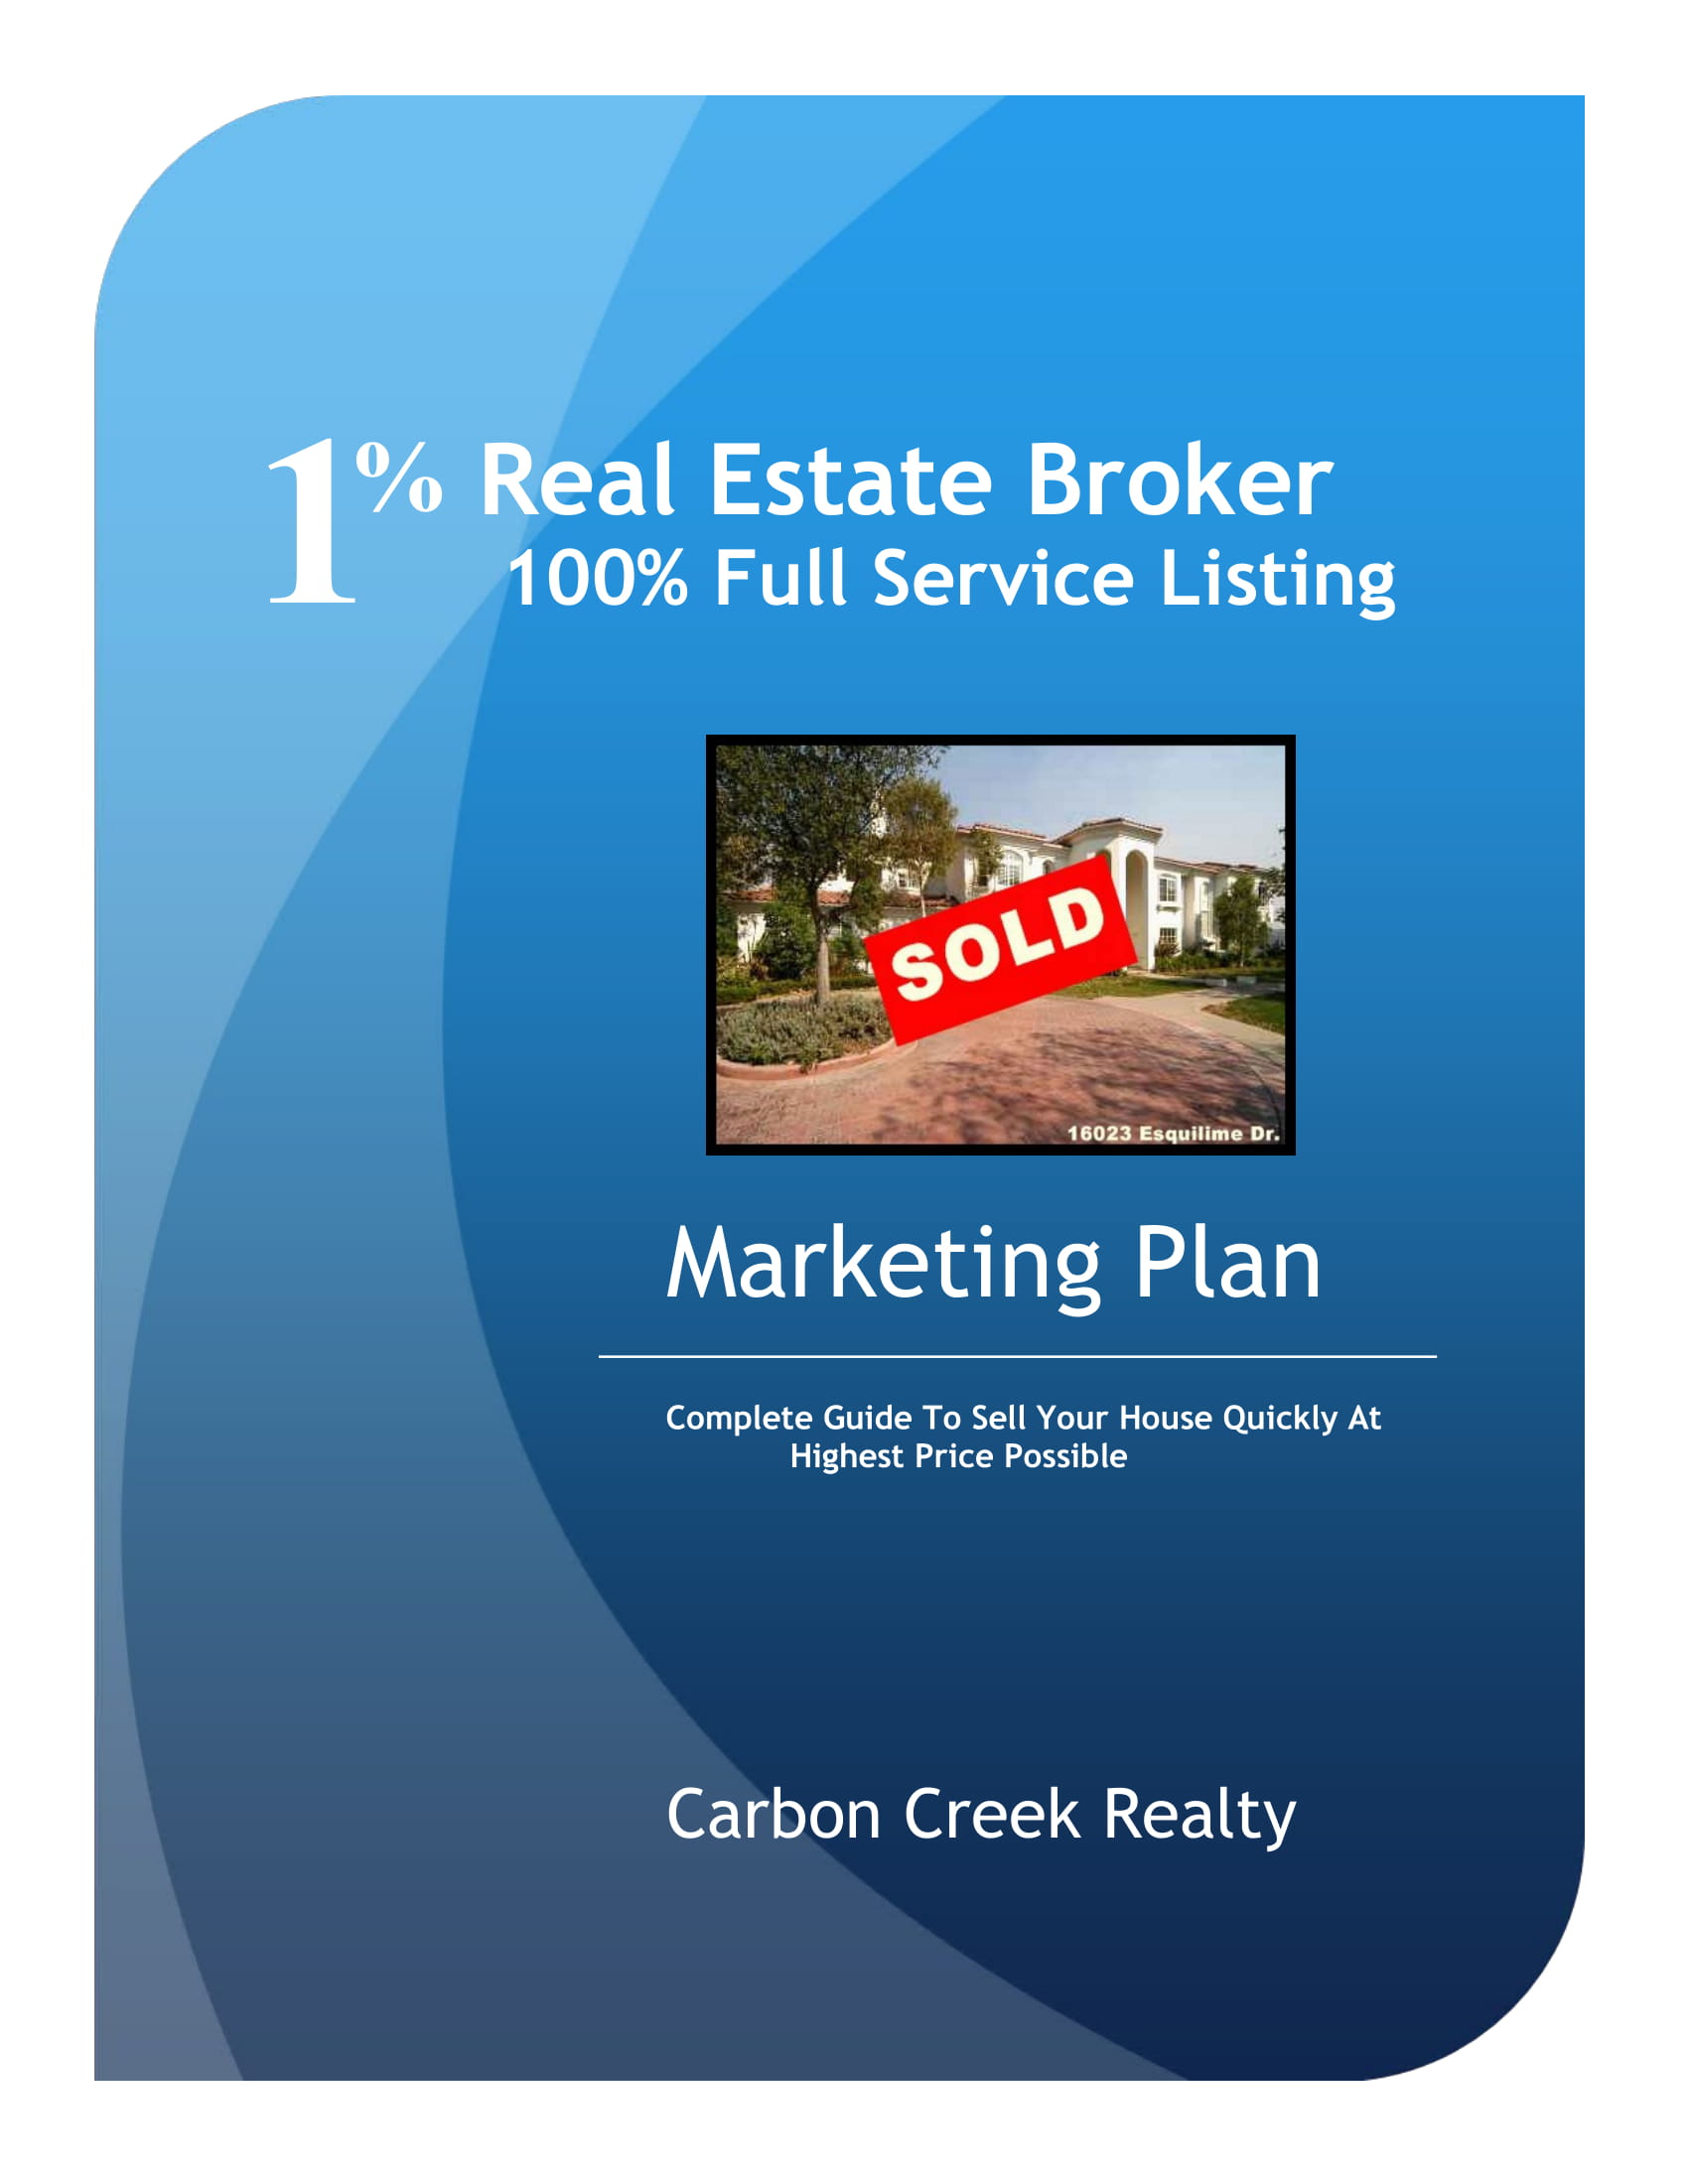 real estate broker marketing plan example 1